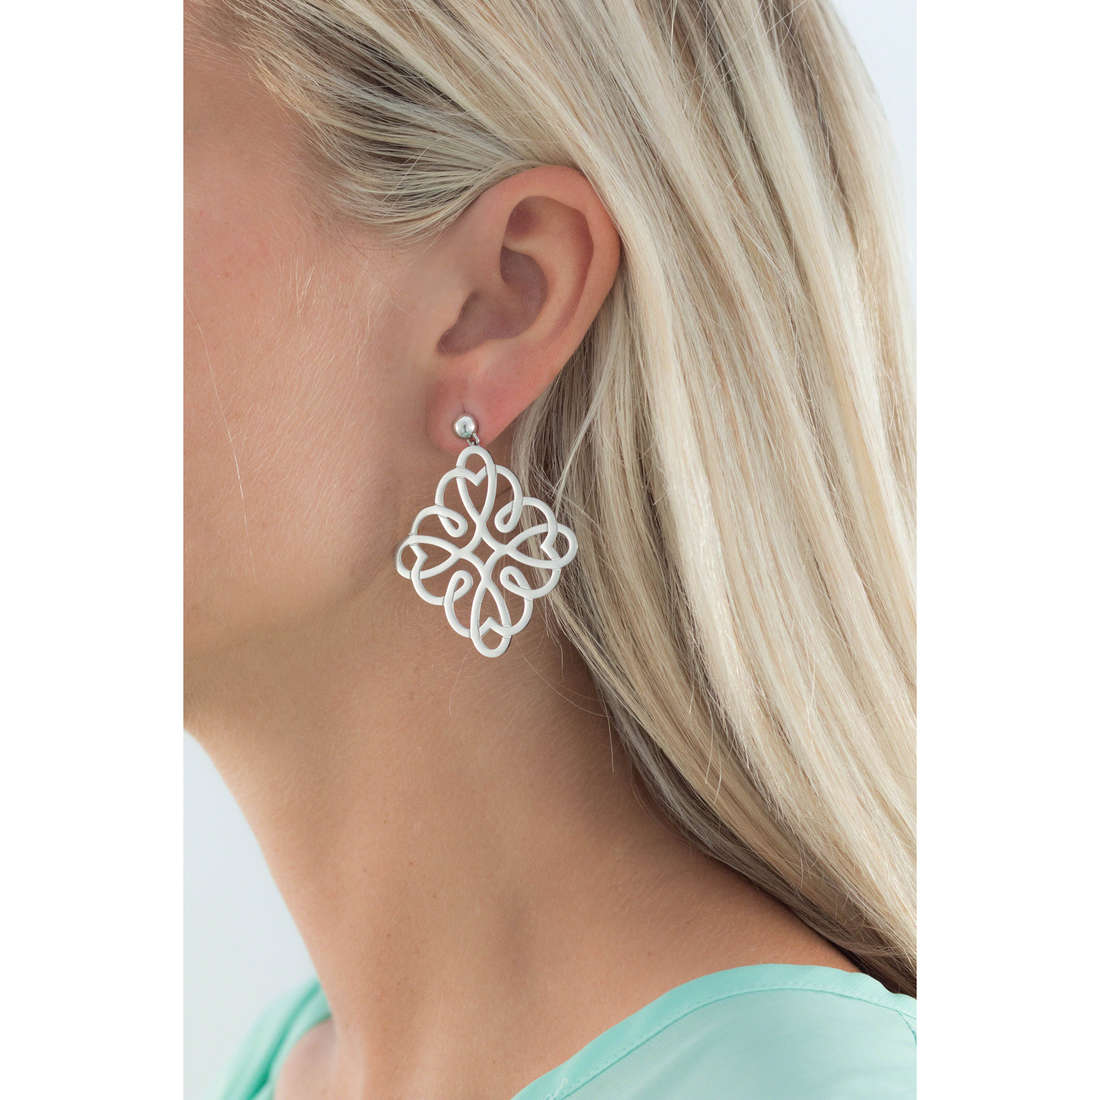 Brosway boucles d'oreille Persia femme BRS21 indosso